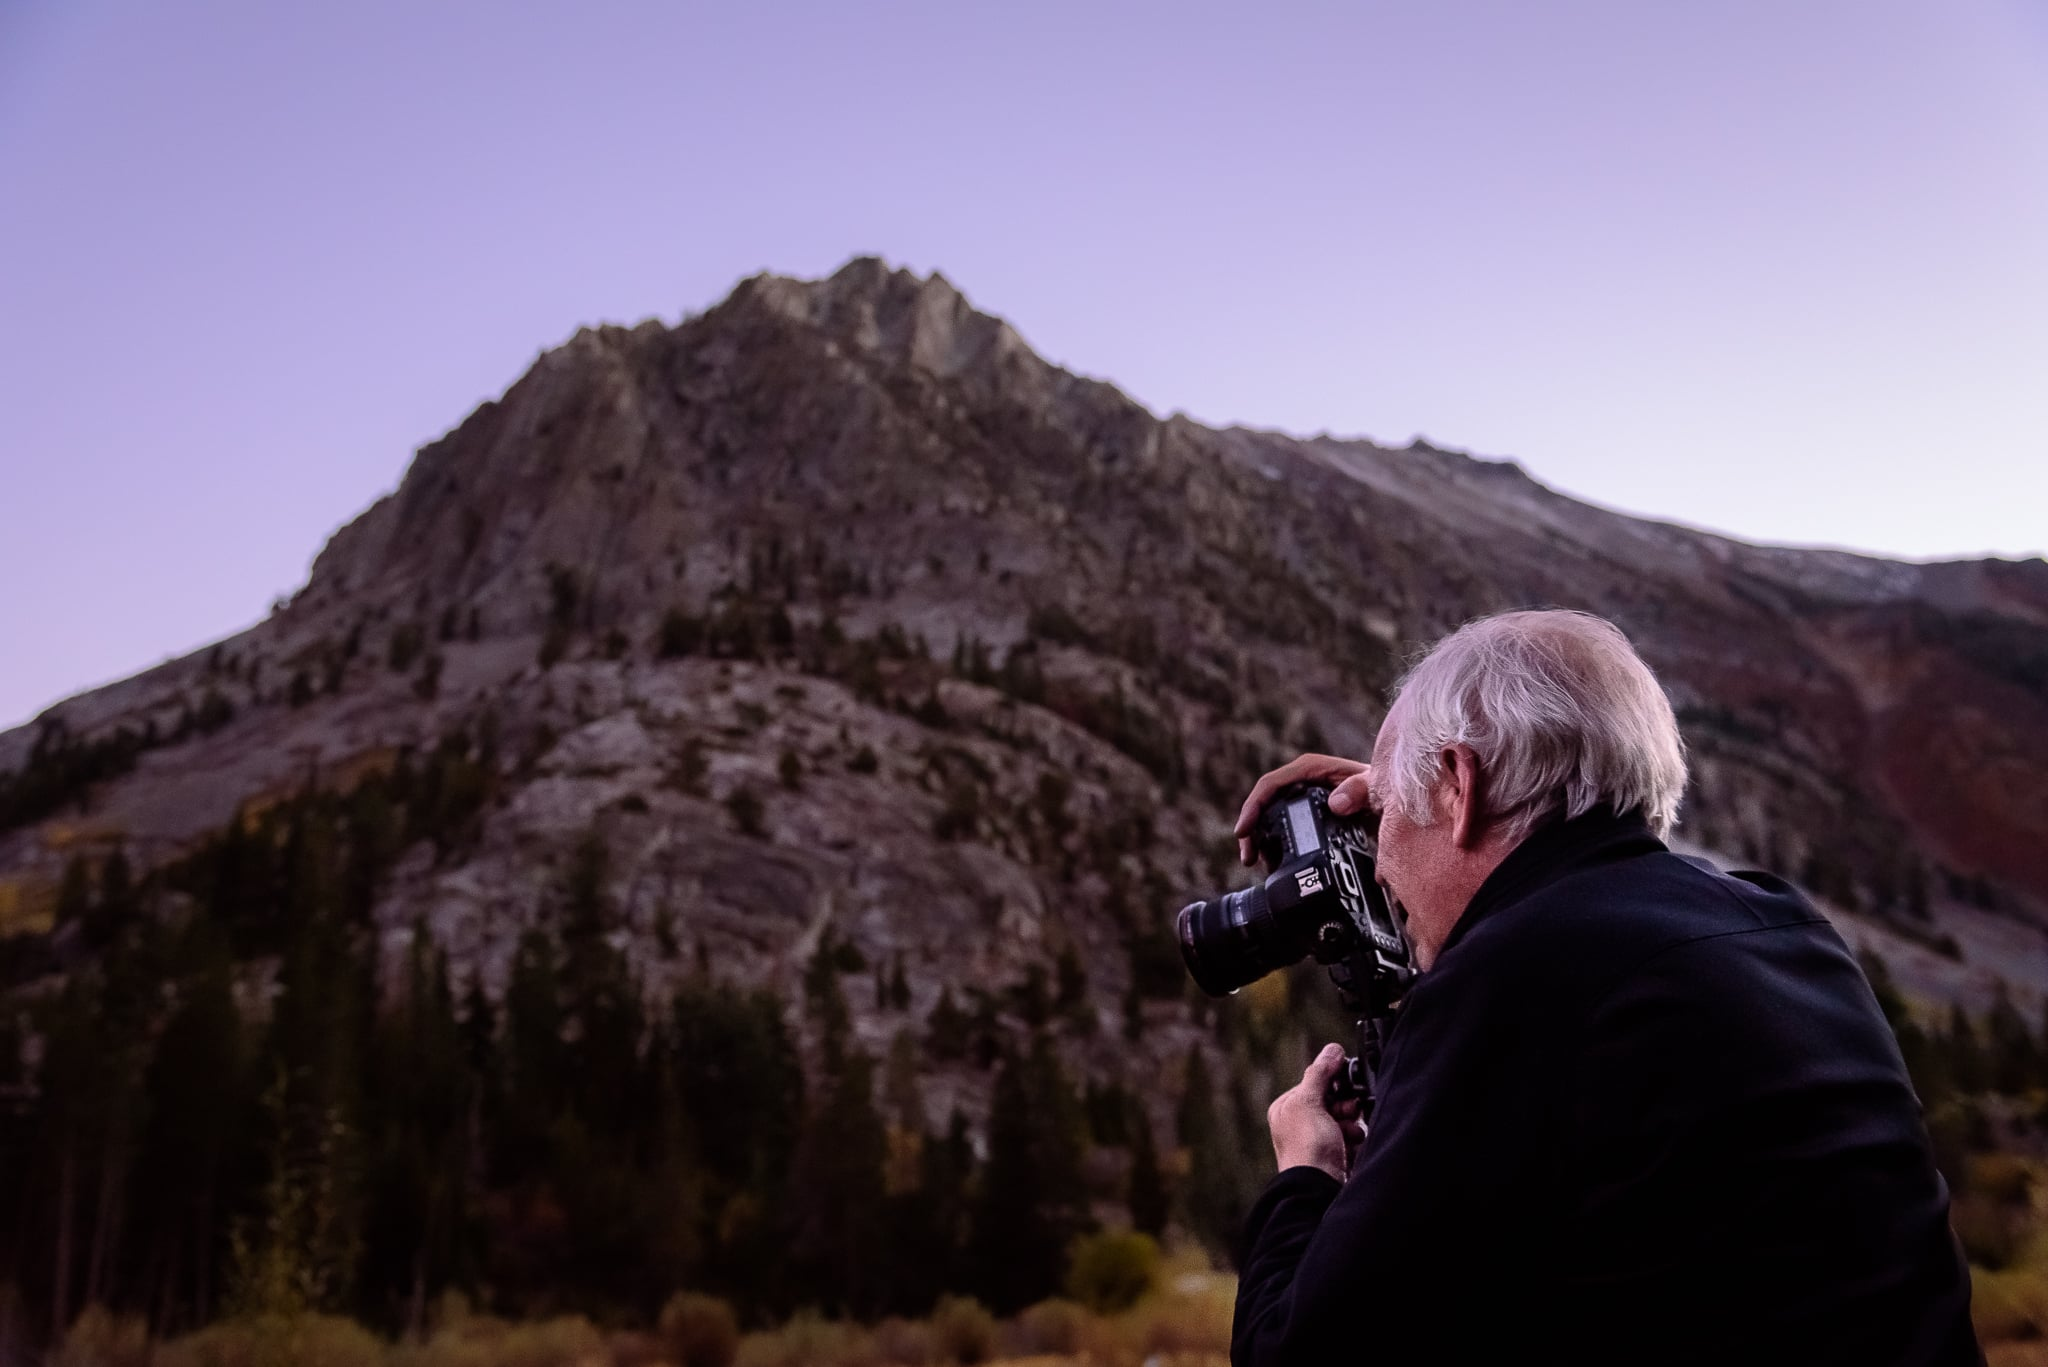 Lundy Canyon gave the group the high Sierra experience I was looking for. The evening provided some amazing twilight in addition to crystal clear star gazing.